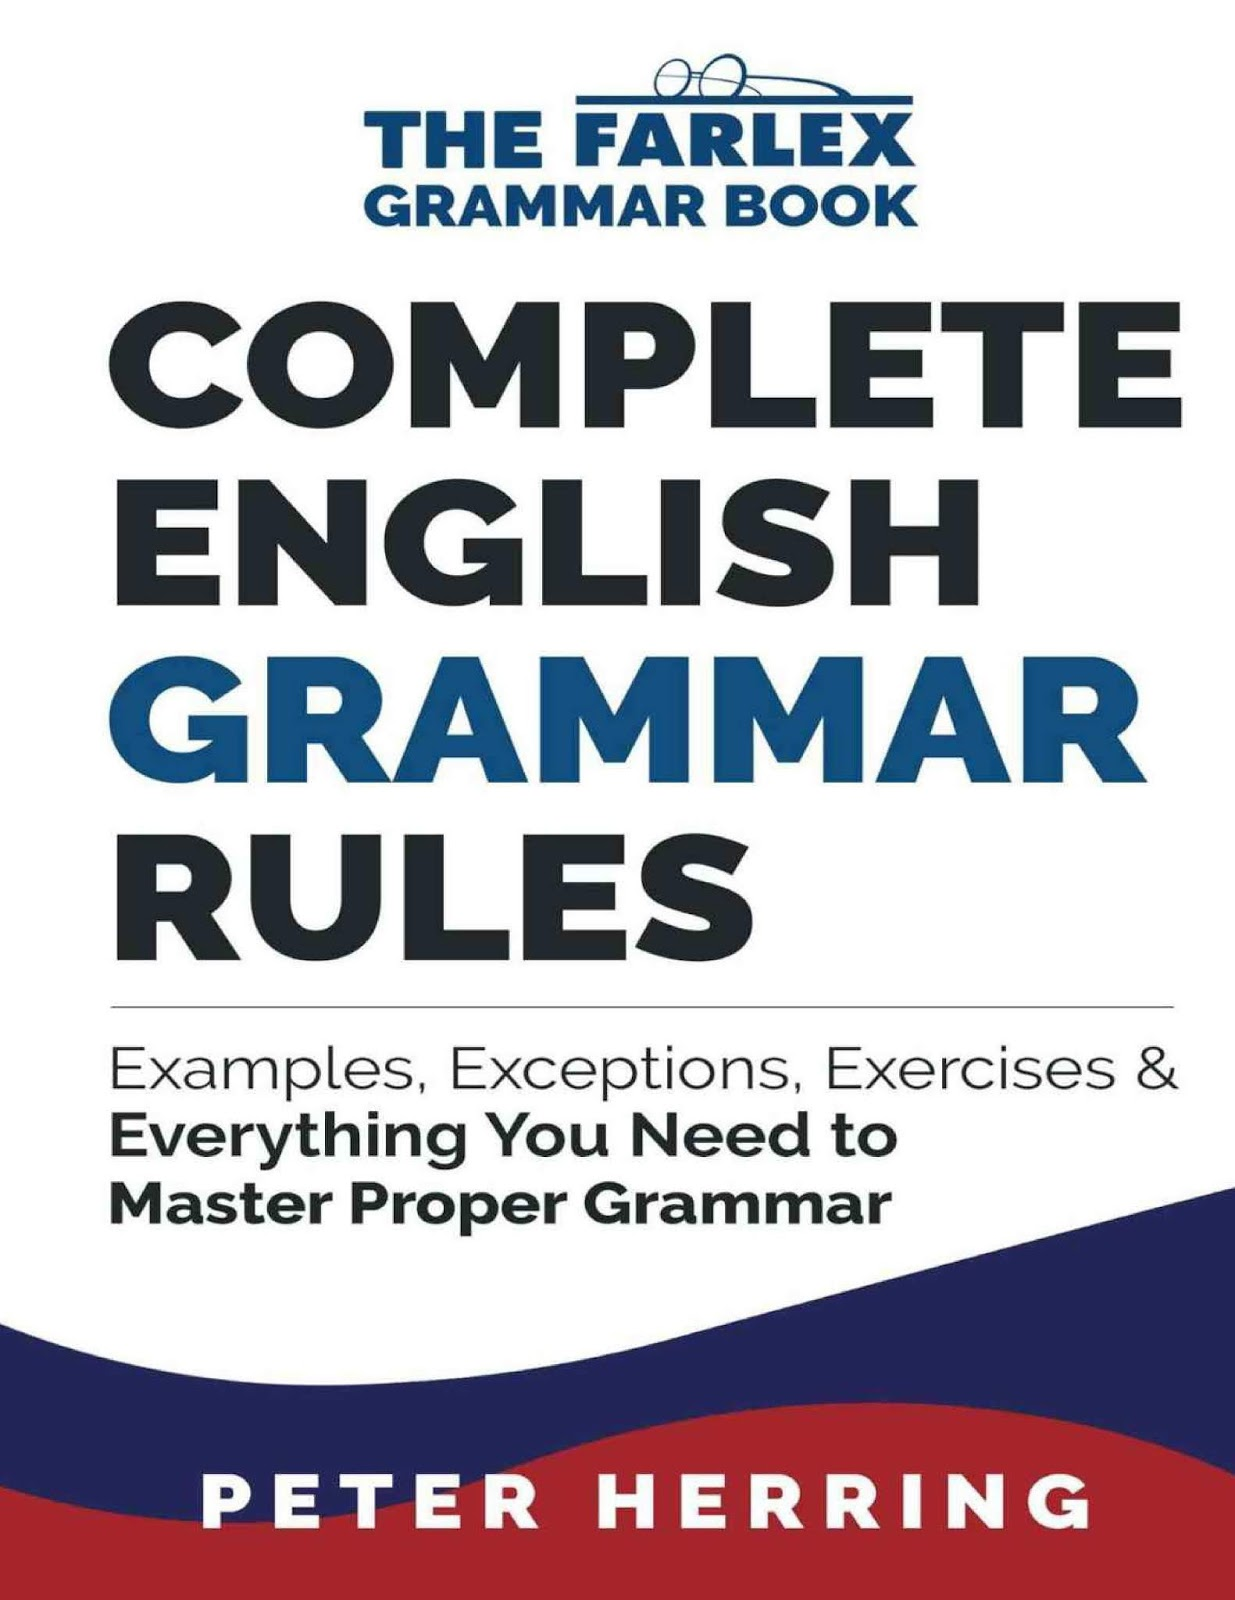 Free Download -Complete English Grammar Rules pdf | Books for learning English grammar|English grammar full version pdf